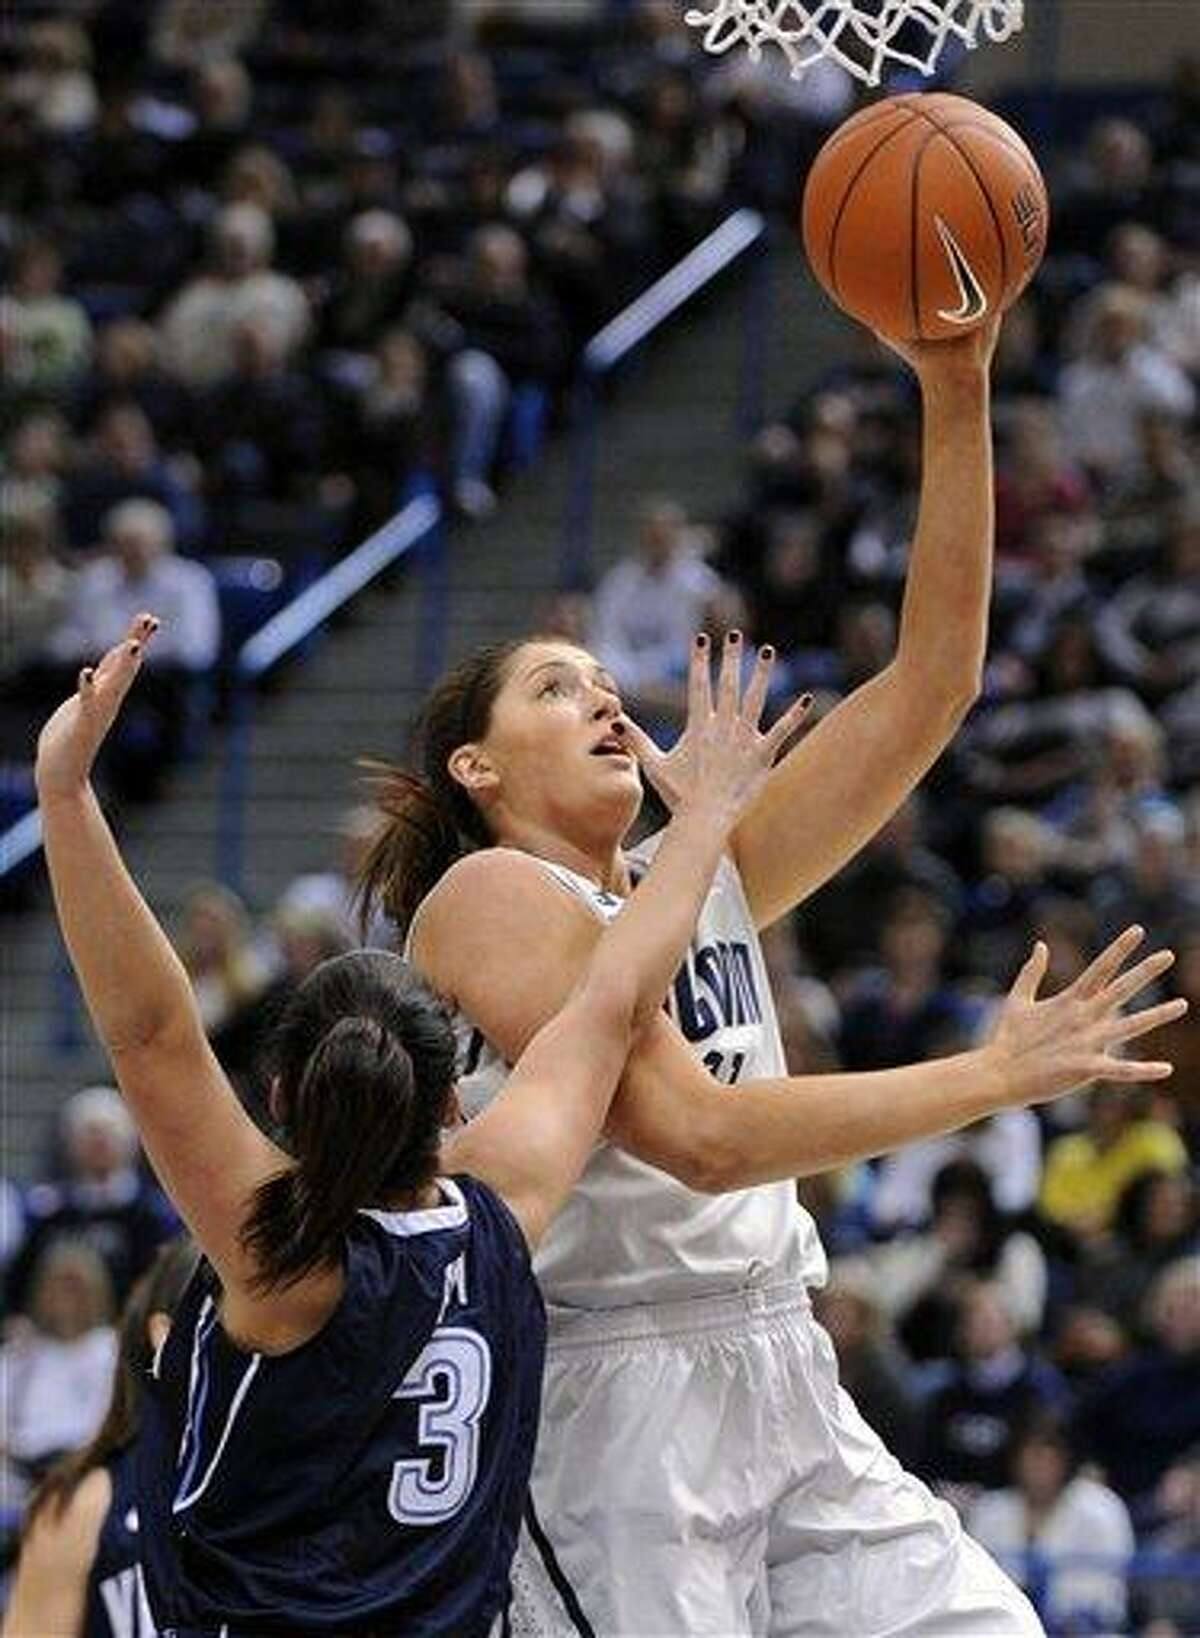 Connecticut's Stefanie Dolson, right, scores while being guarded by Villanova's Jesse Carey during the first half of an NCAA college basketball game in Hartford, Conn., Tuesday, Jan. 29, 2013. (AP Photo/Fred Beckham)